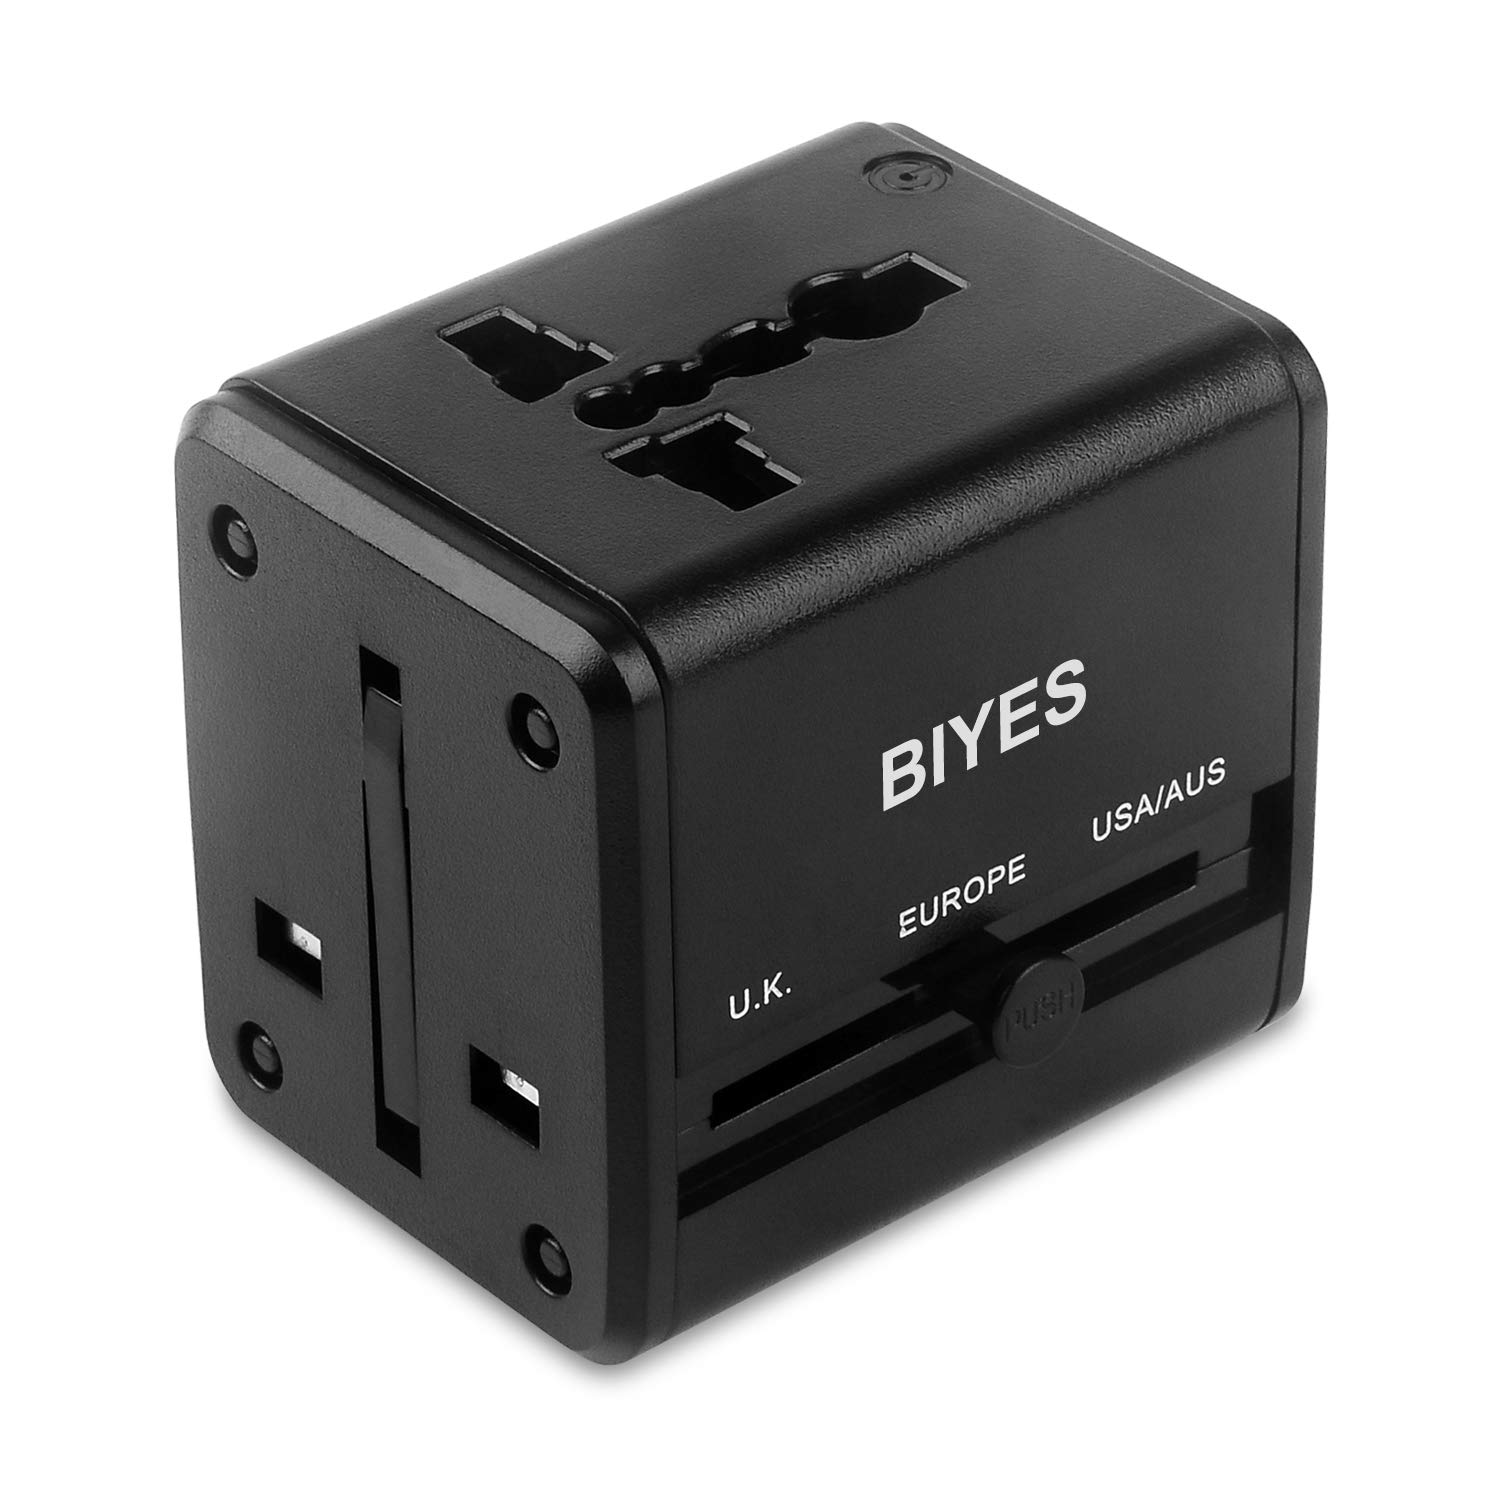 Universal Travel Adapter, BIYES All-in-one World Adapter Plug with Dual USB Charging Ports, Worldwide Travel Adapter Charger [for USA UK EU AUS ASIA] (Black) by BIYES